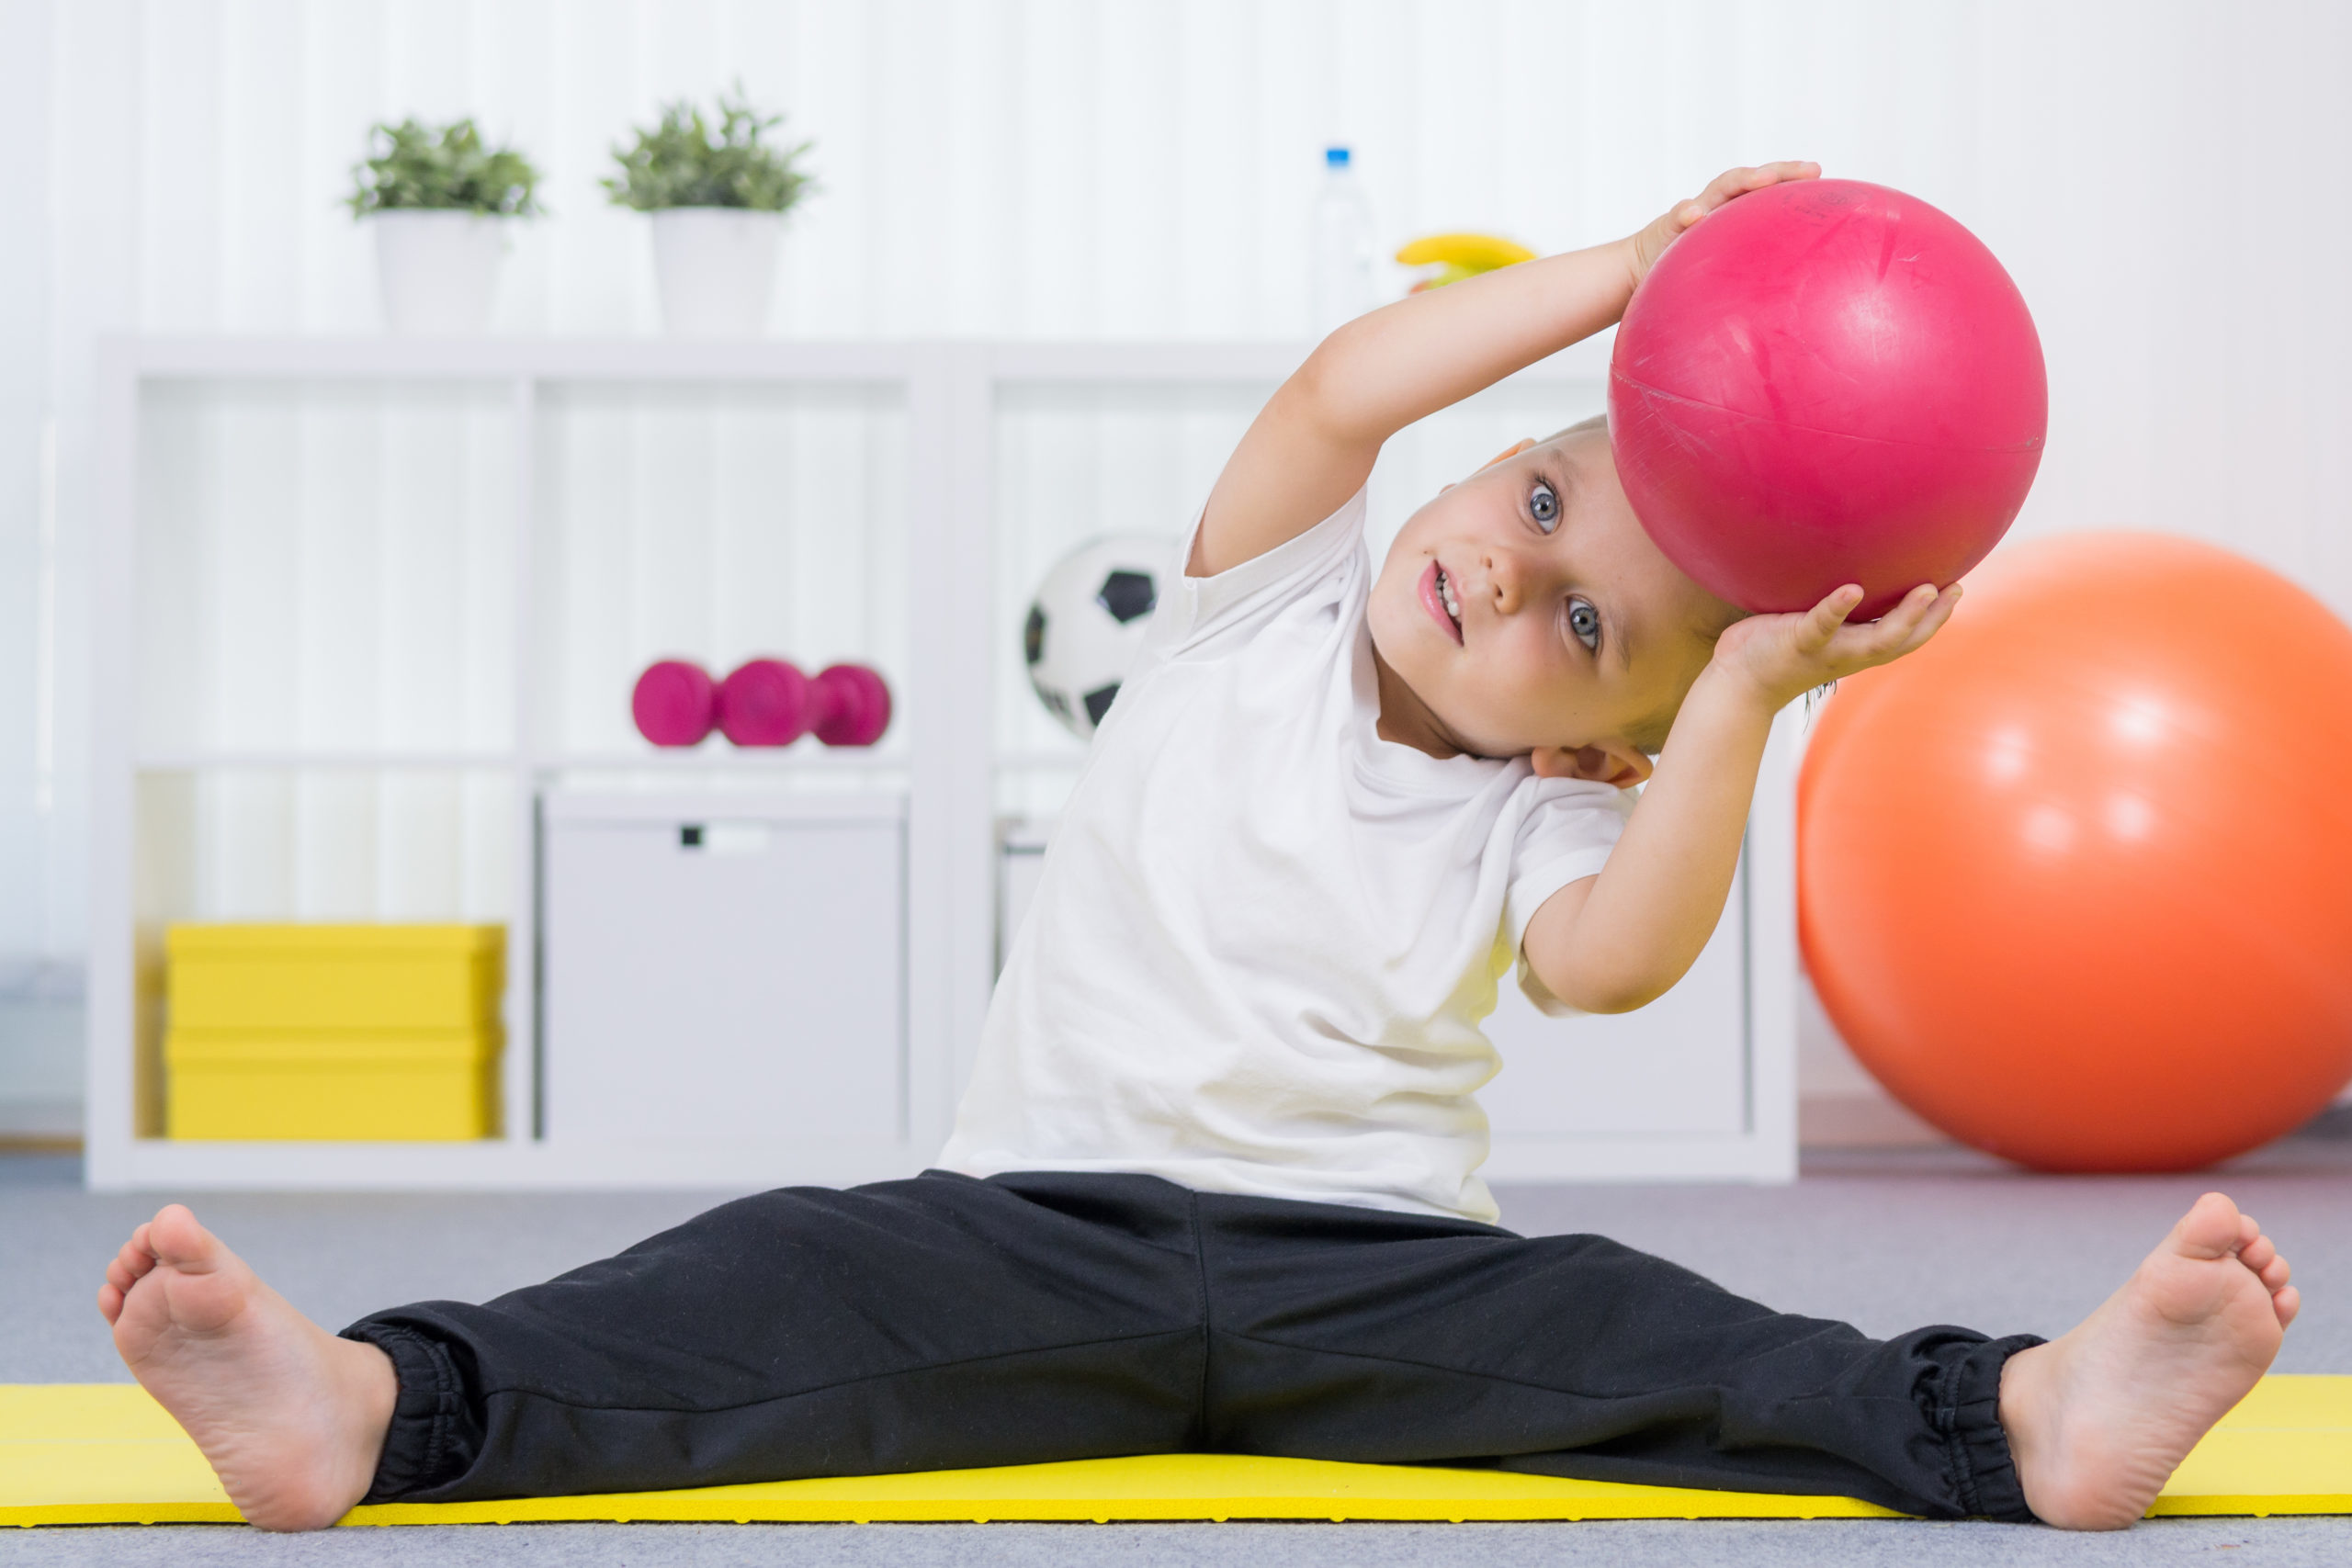 children's physiotherapy - Home Physio Group